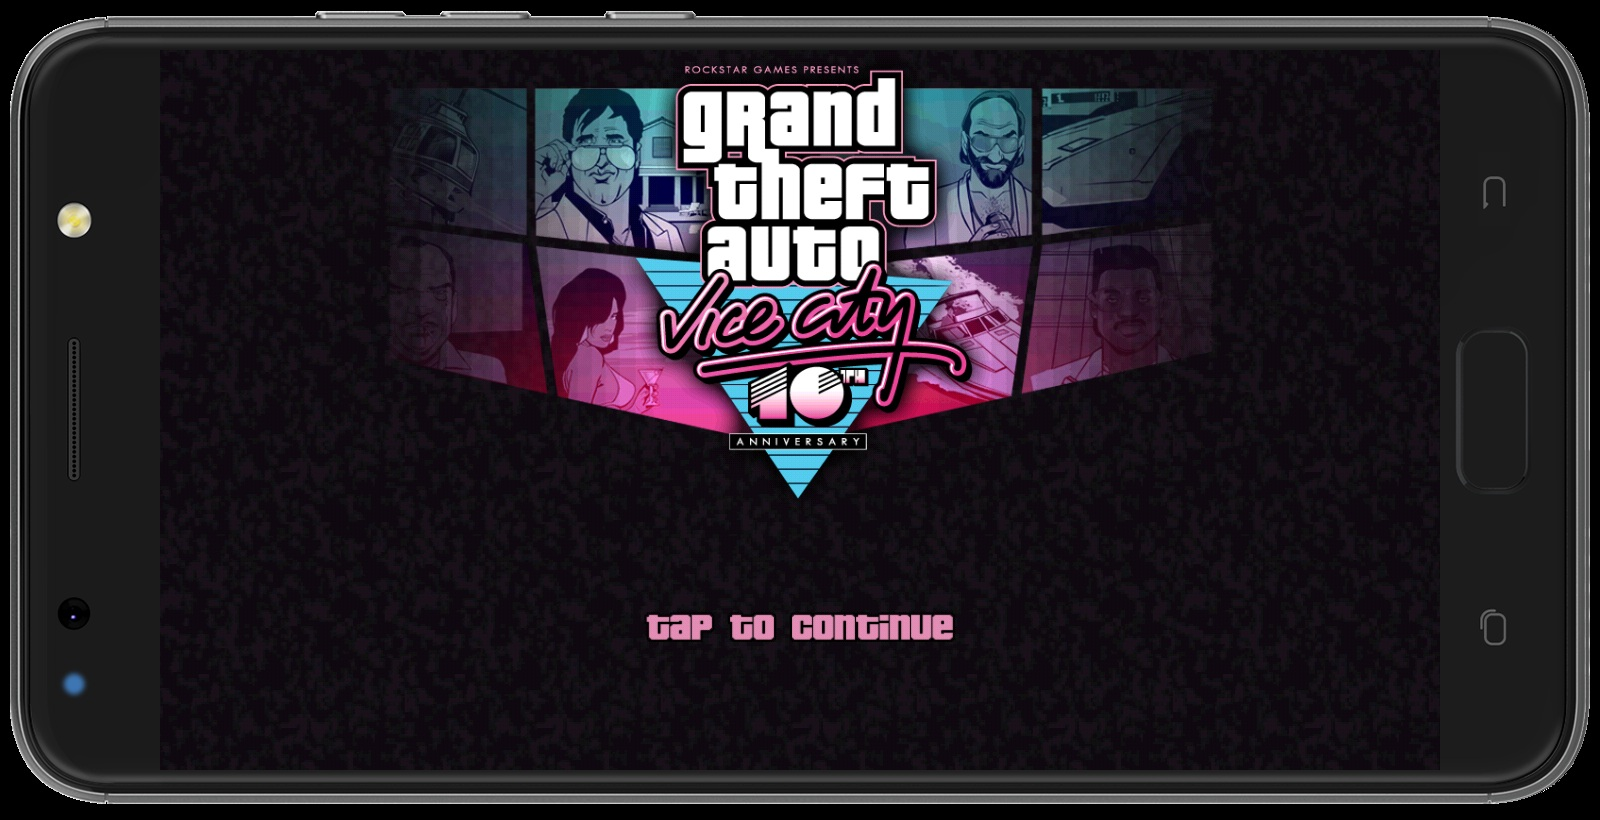 Gta Vice City Andriod Mobile Mai Kaise Download Kare - Dadforu